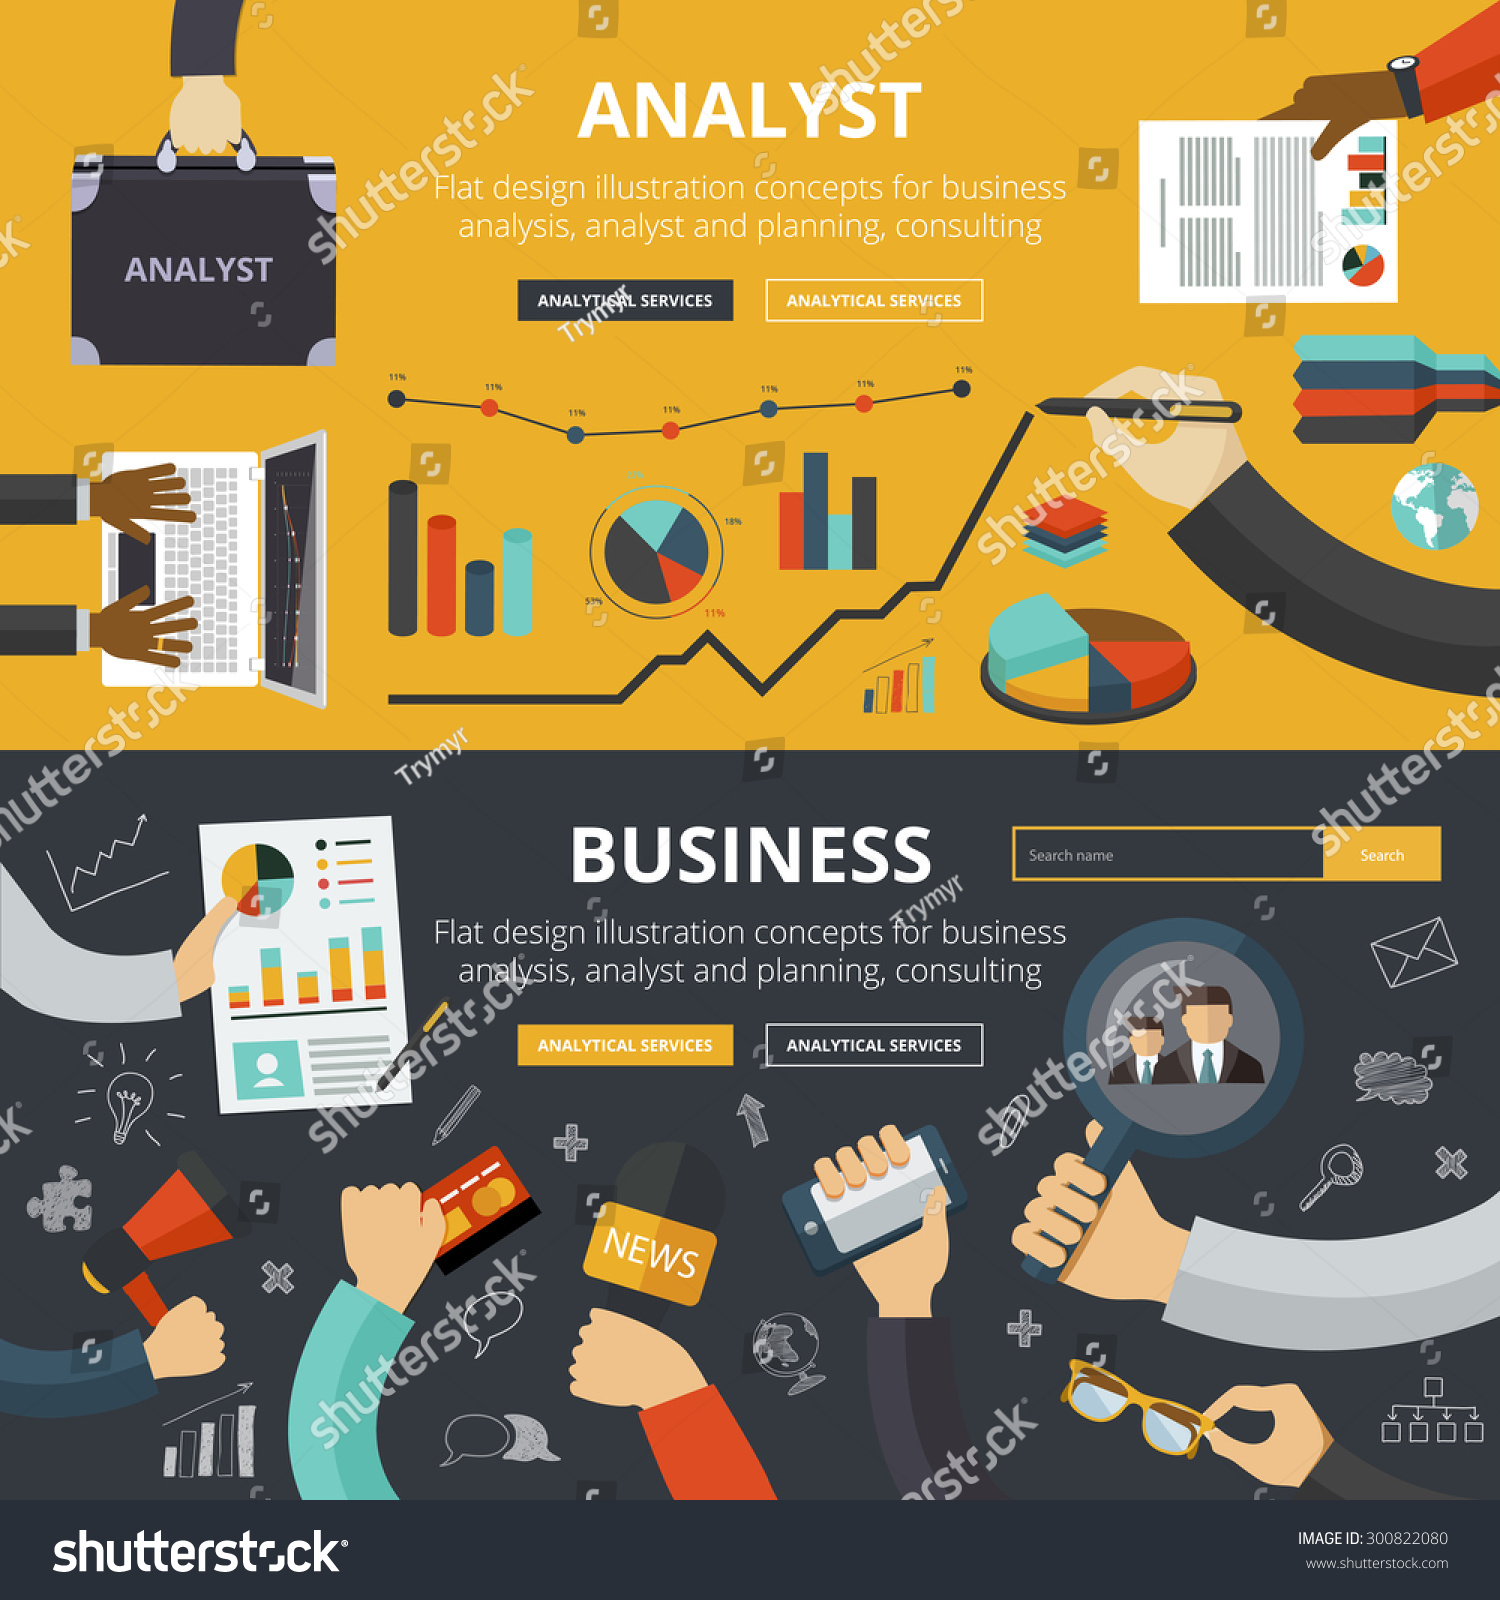 Flat Design Illustration Concepts For Business Analysis